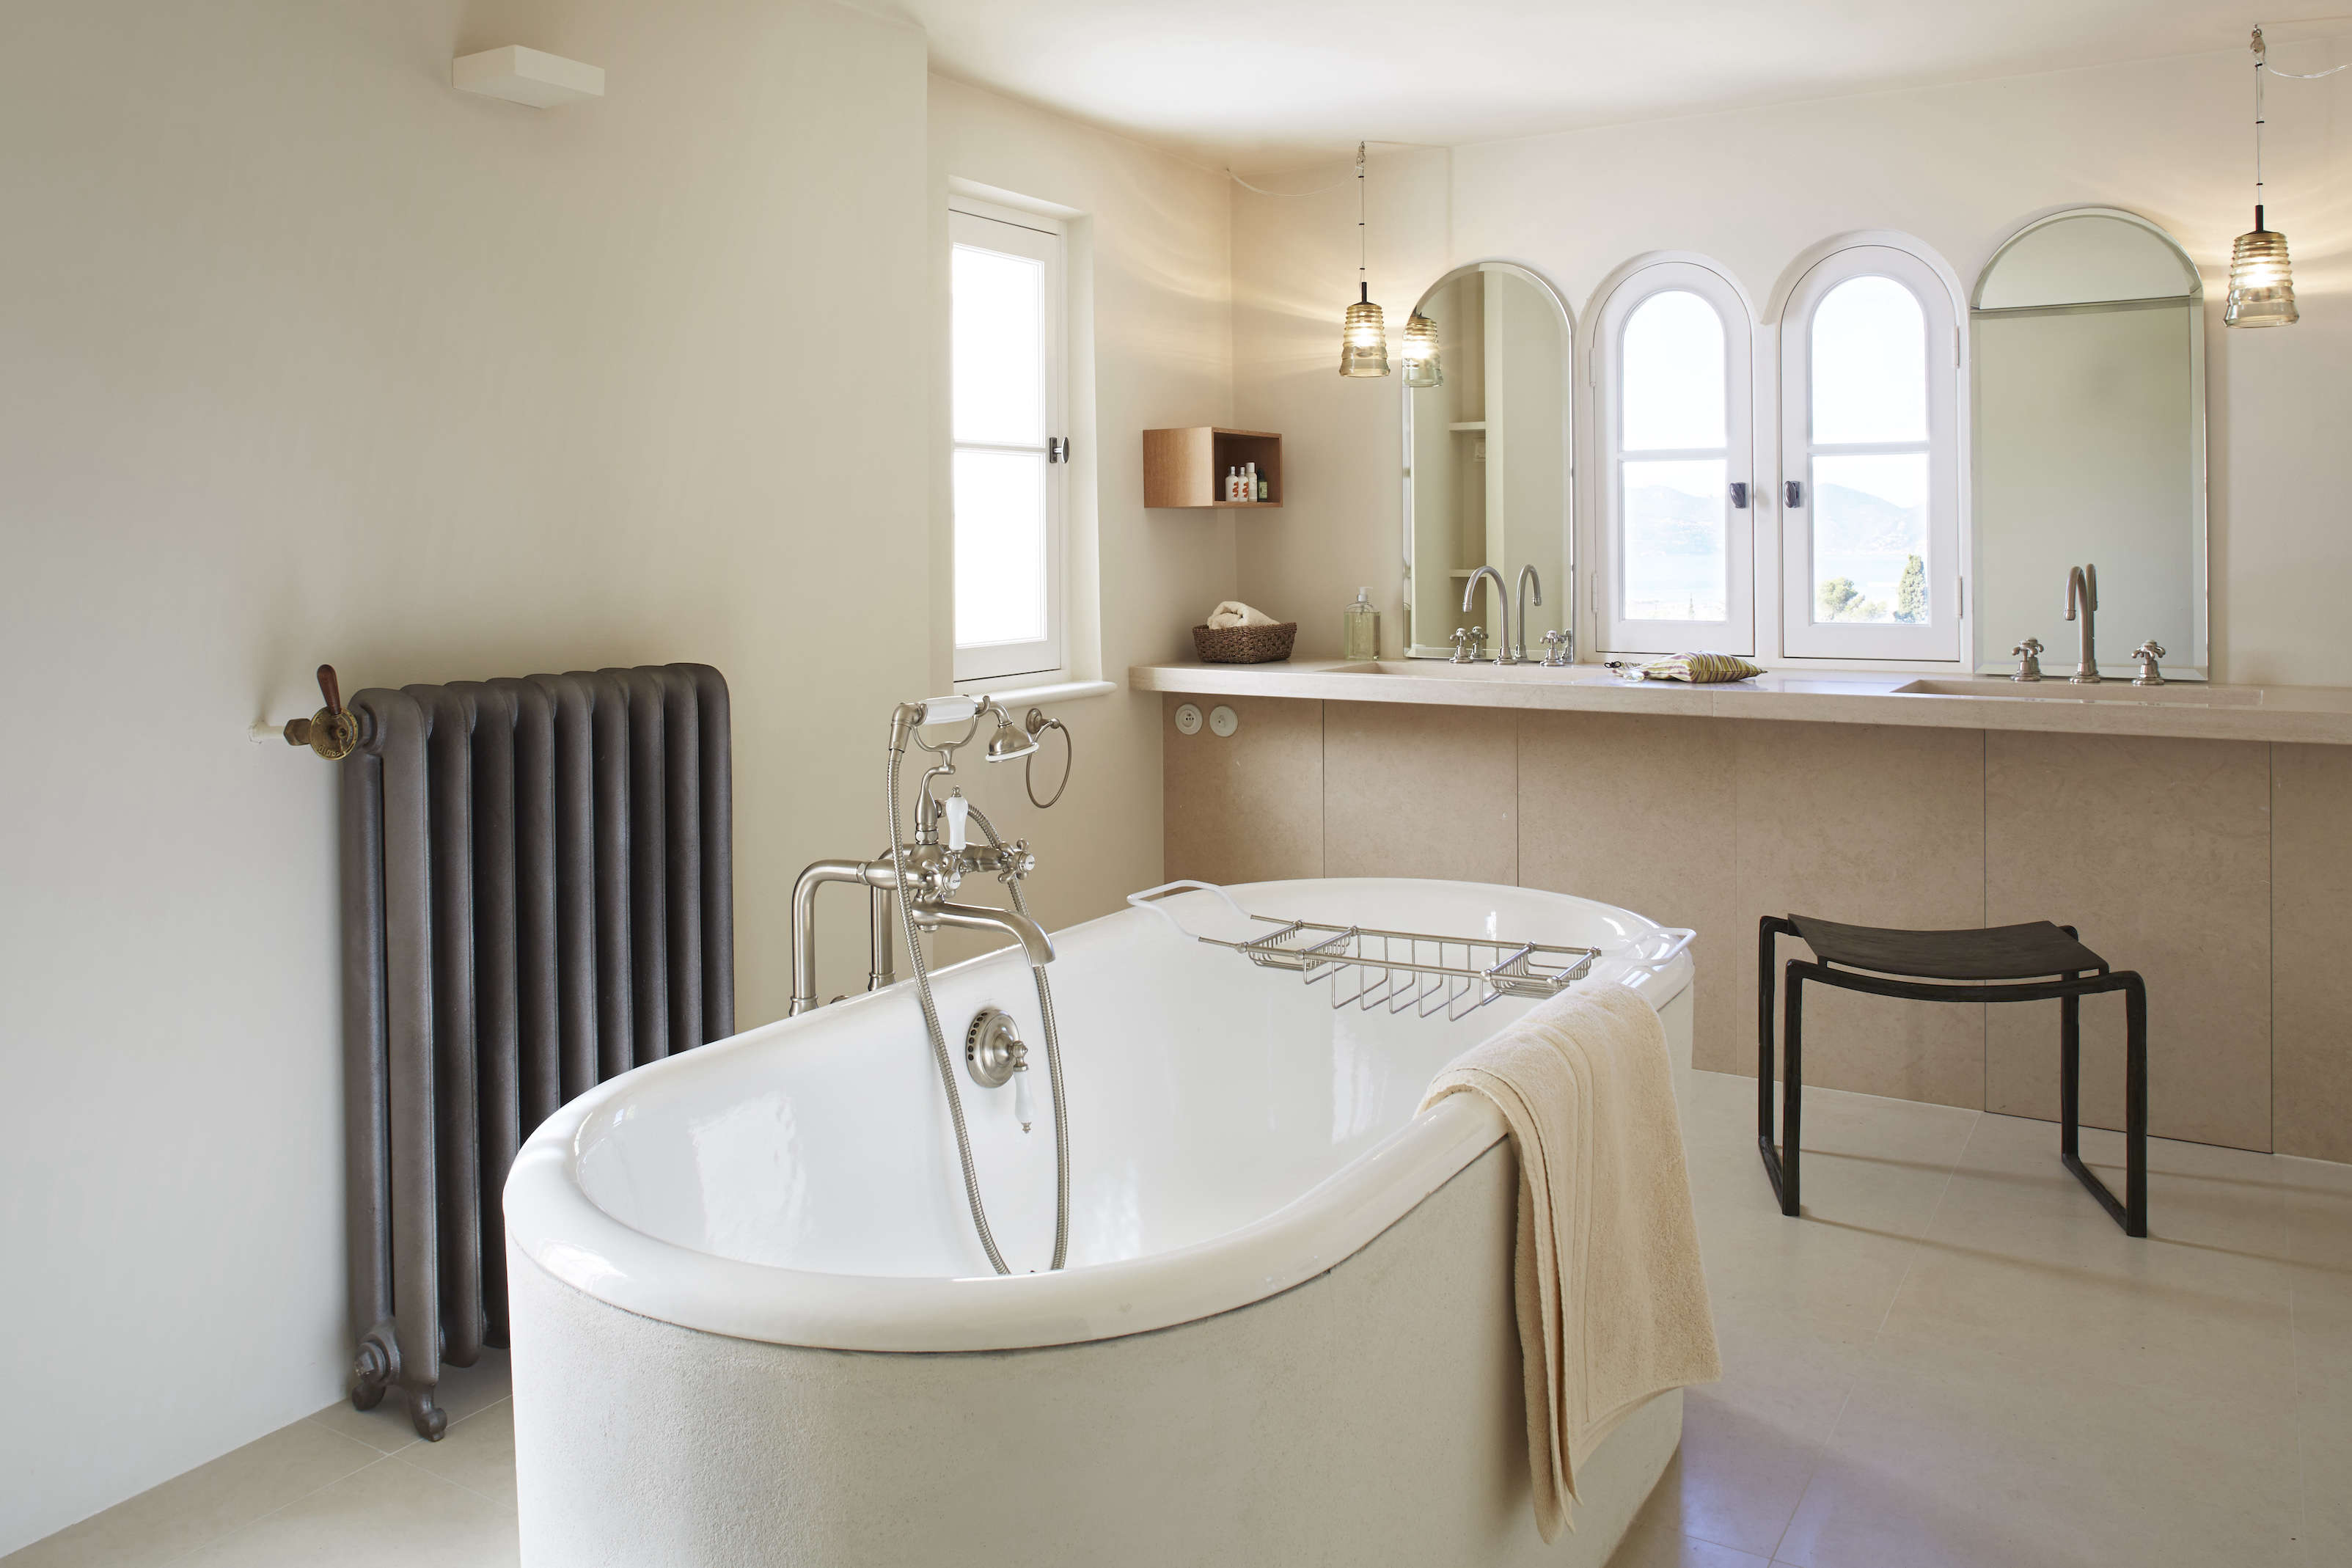 The master bathroom features a freestanding oval bathtub from Bette and double sinks with mirrors that echo the arched windows. The metal radiator is from Alphamétal, a French company that specializes in renovating (and also reissuing) classic cast-iron radiators.